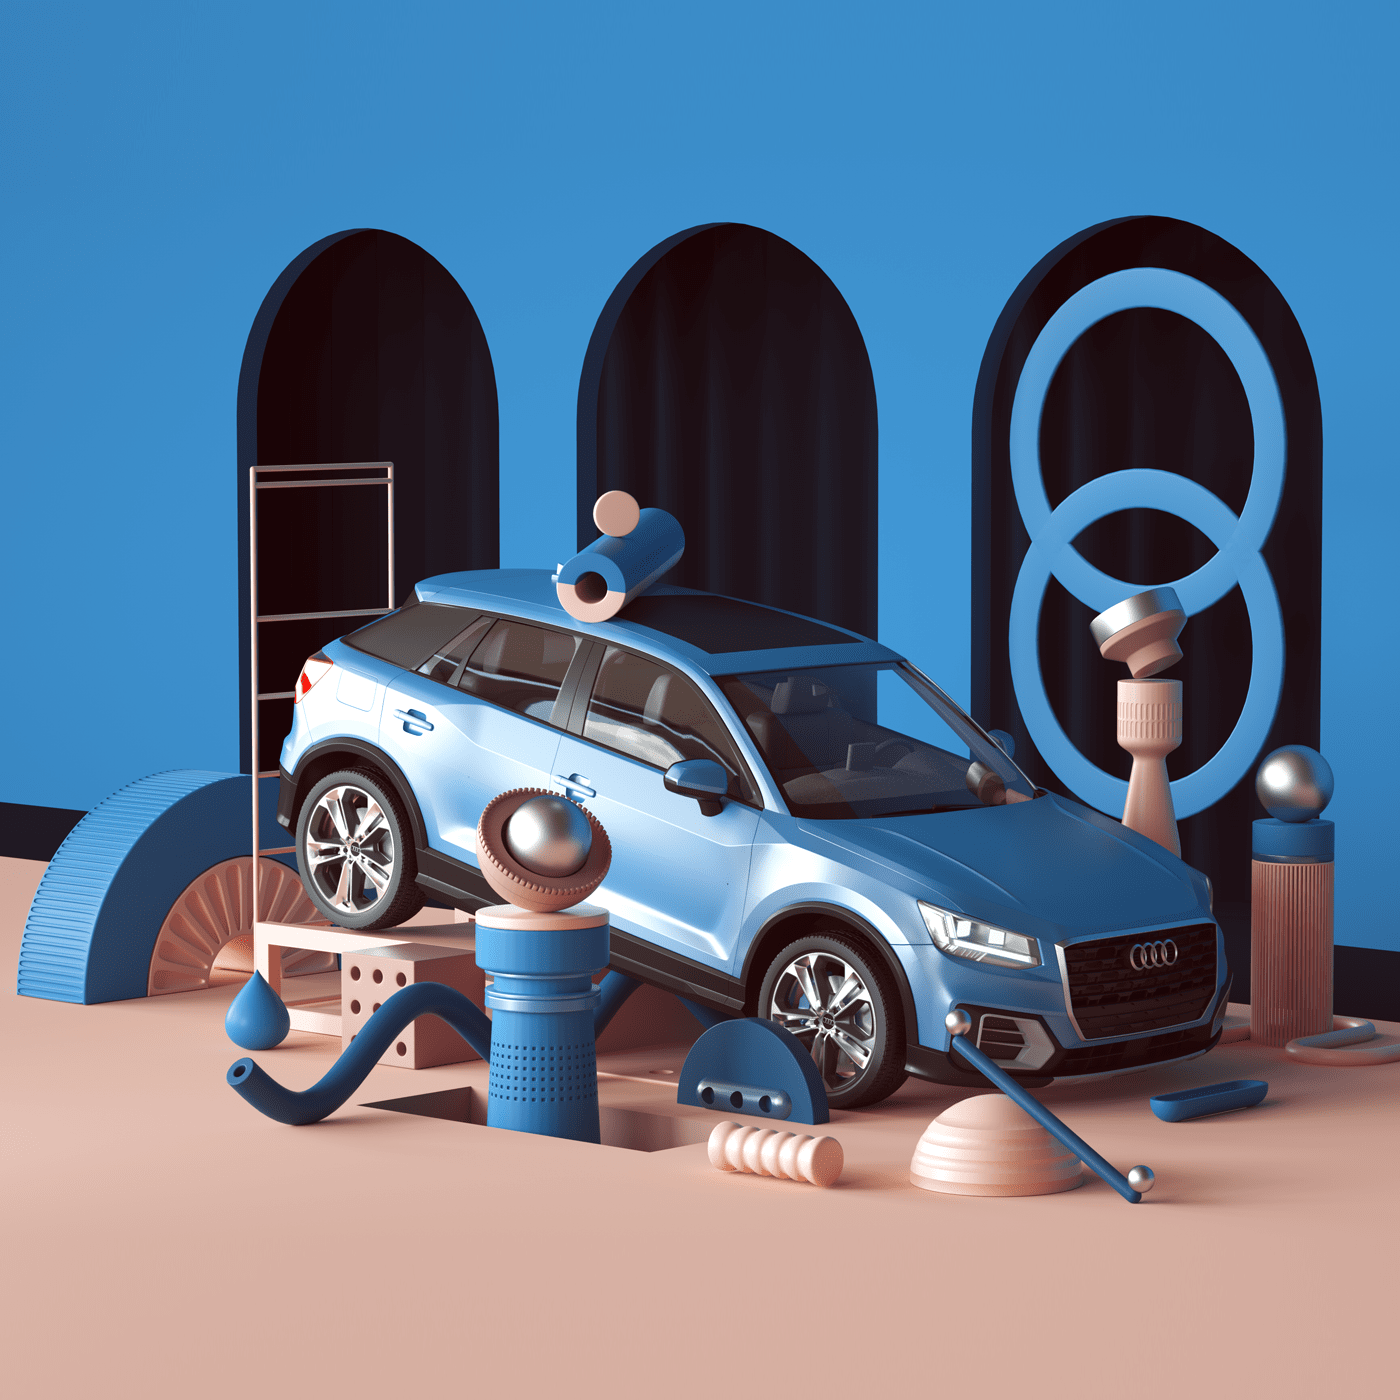 audi-q-behance-project-3D-design-inspiration